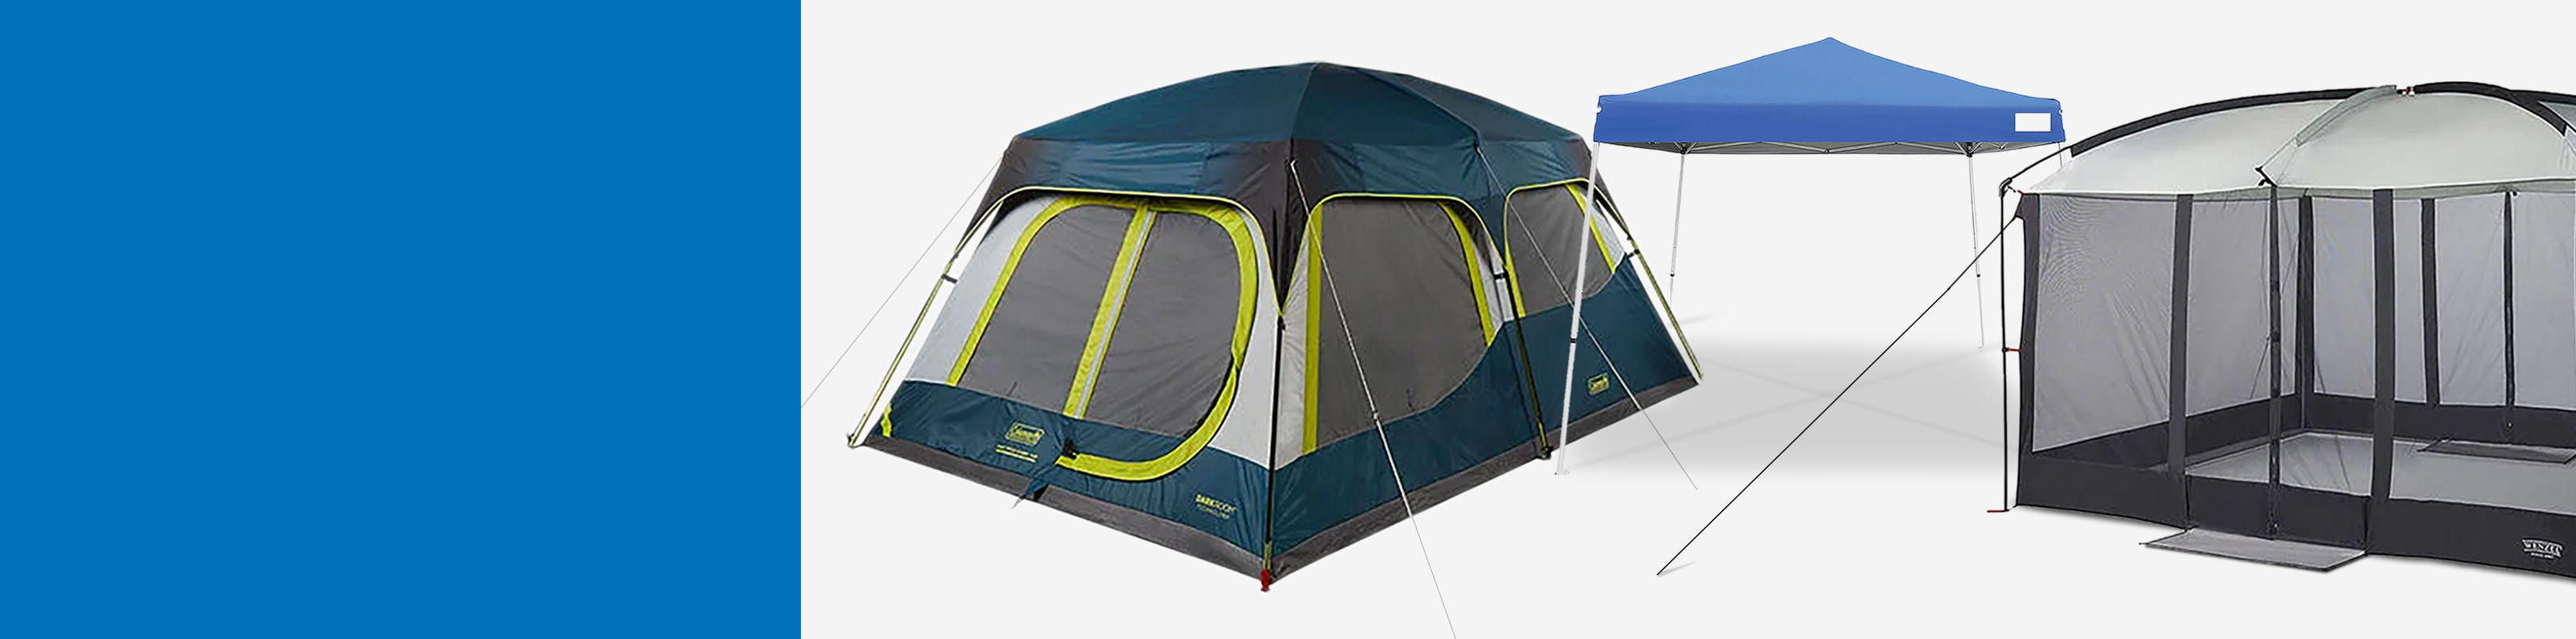 We've Got You Covered! Up to 30% off Tents, Canopies & Shelters